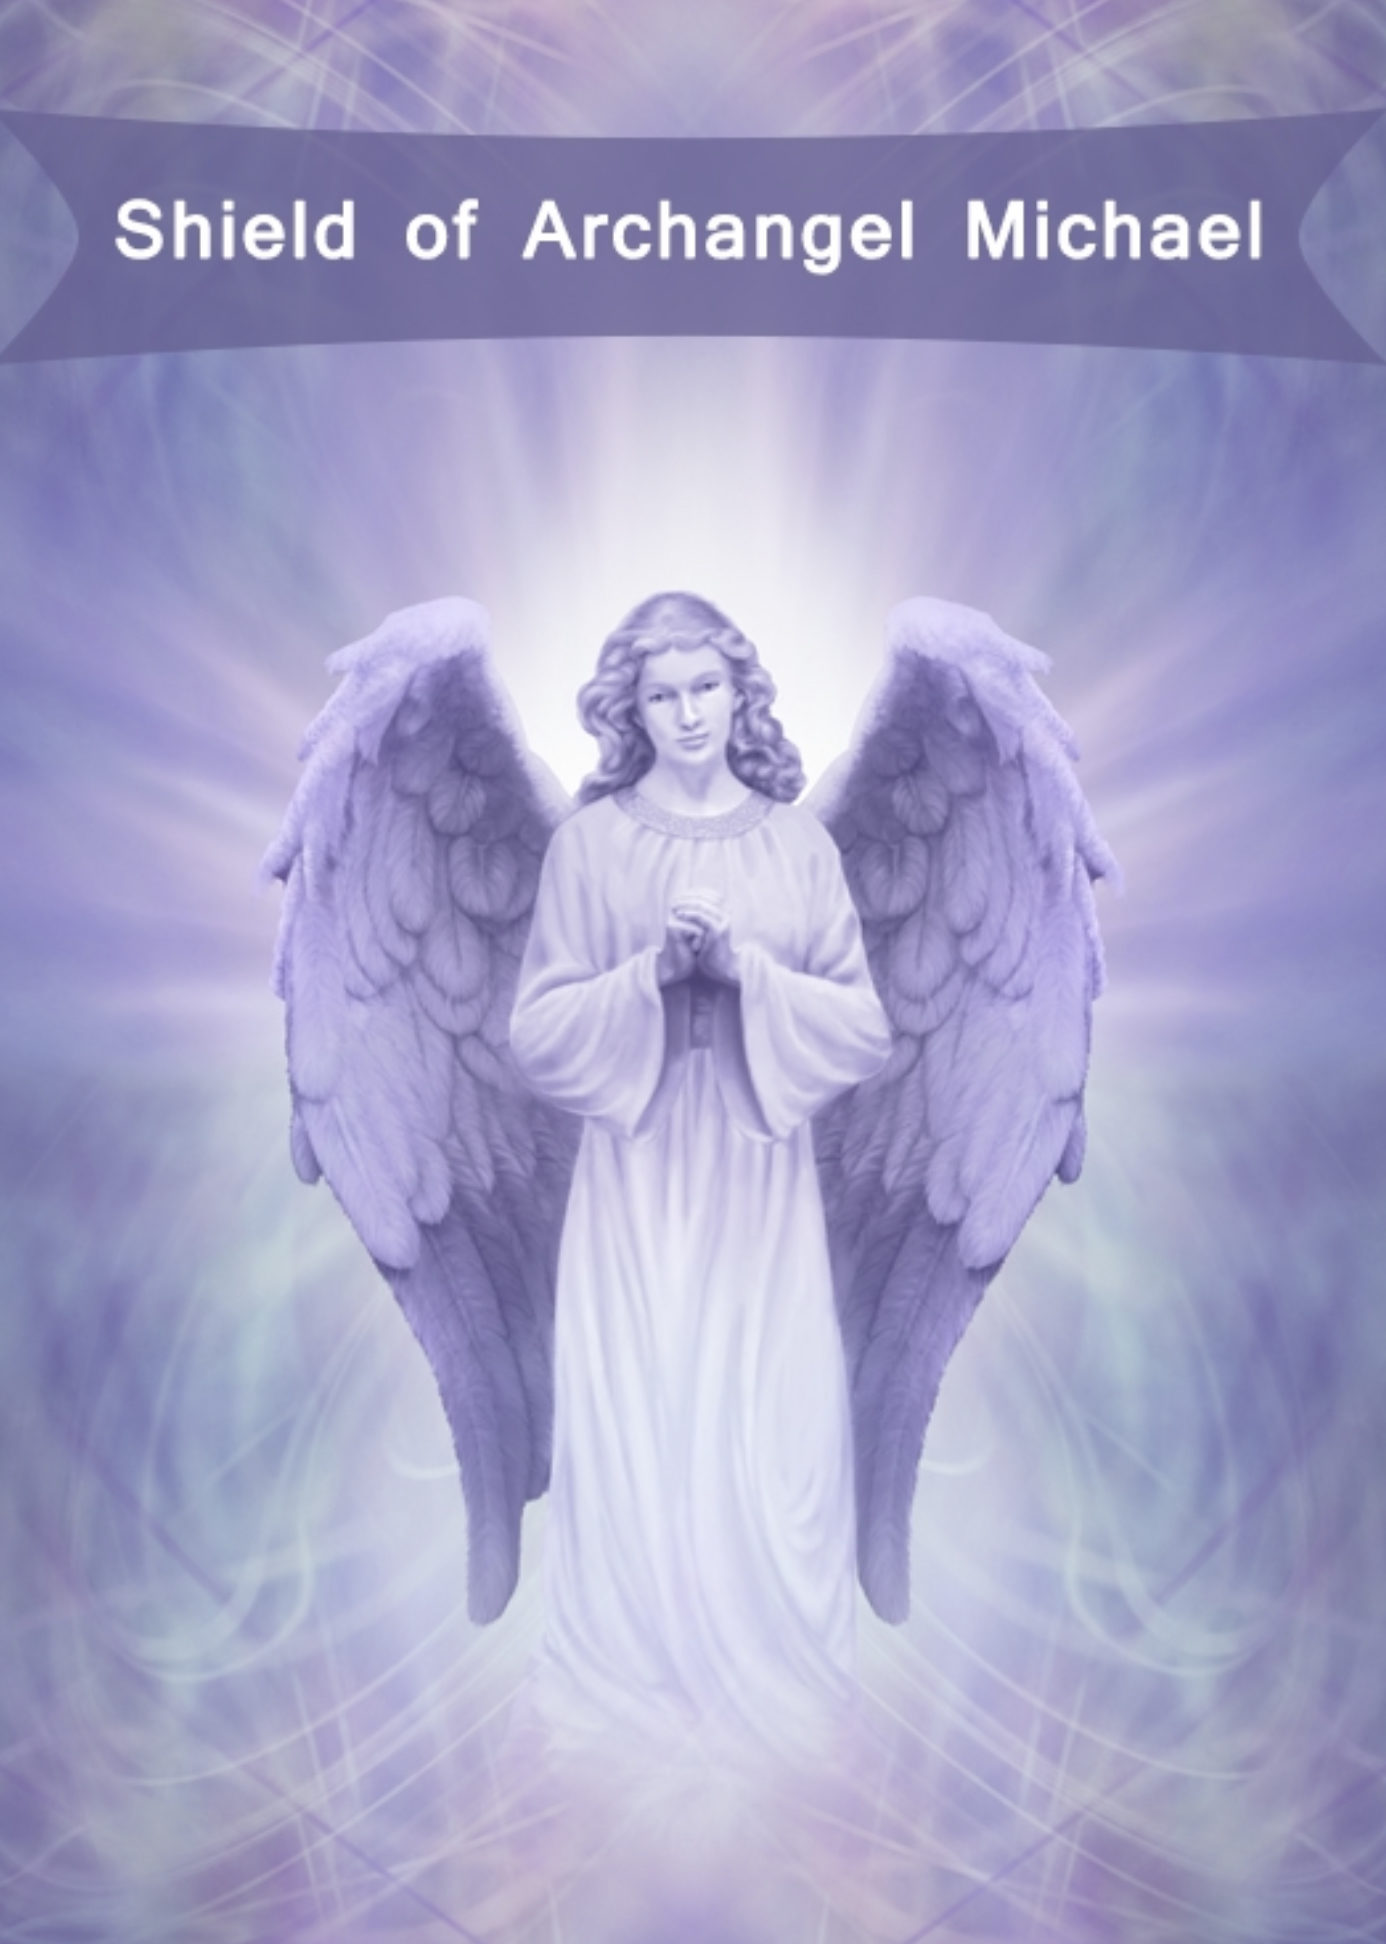 Invoke the Guidance and Protection of Archangel Michael.